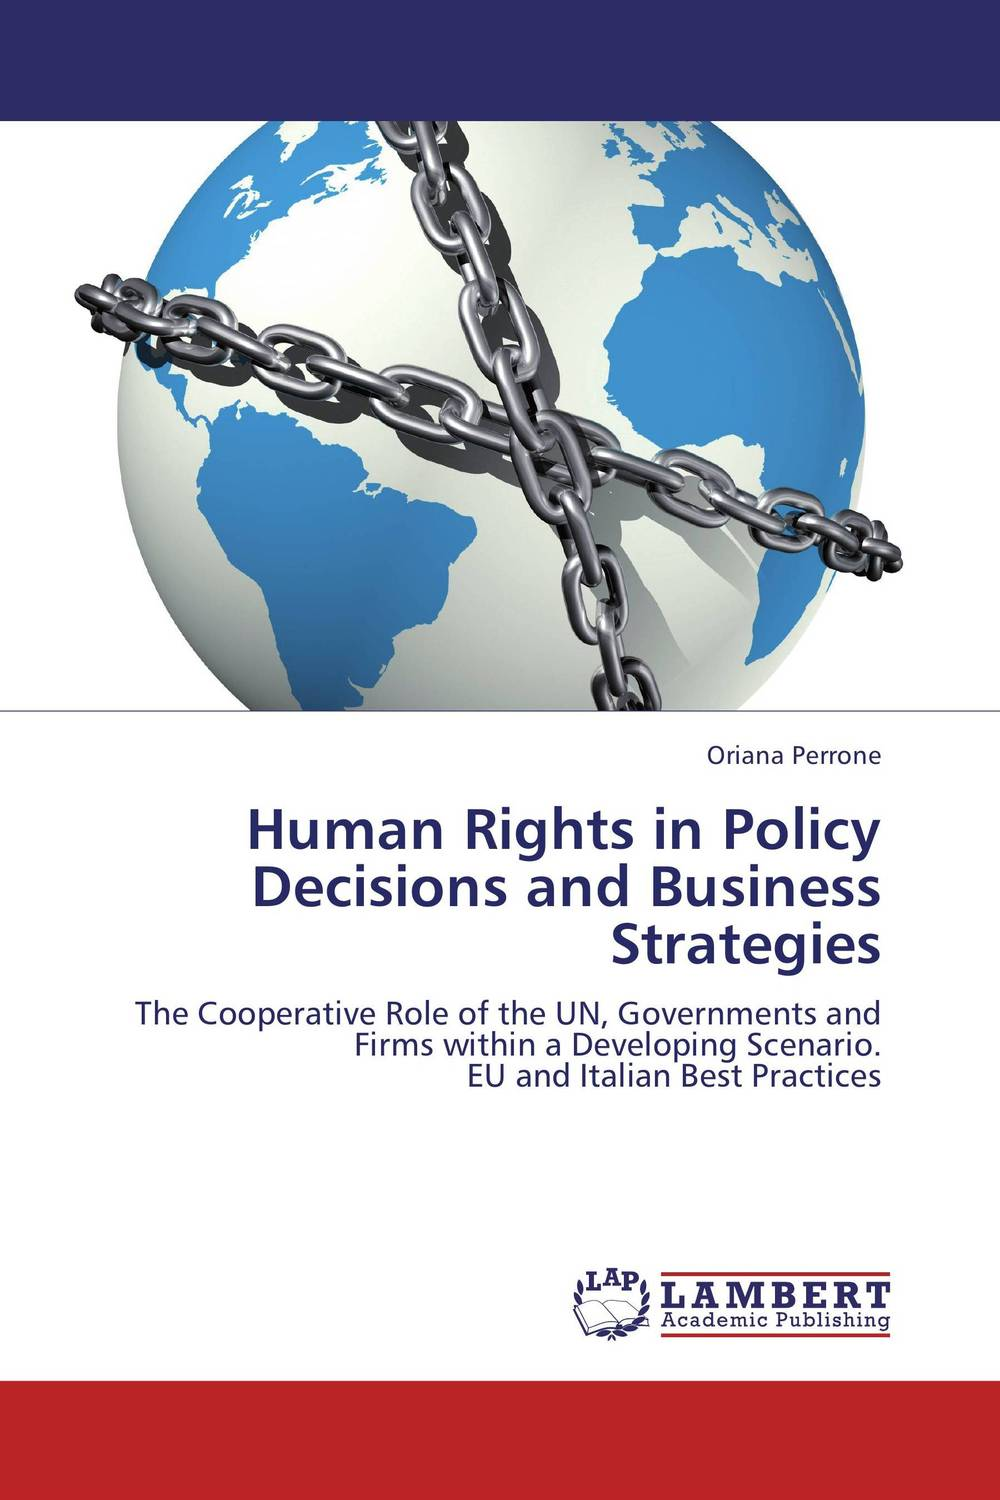 Human Rights in Policy Decisions and Business Strategies foreign policy as a means for advancing human rights